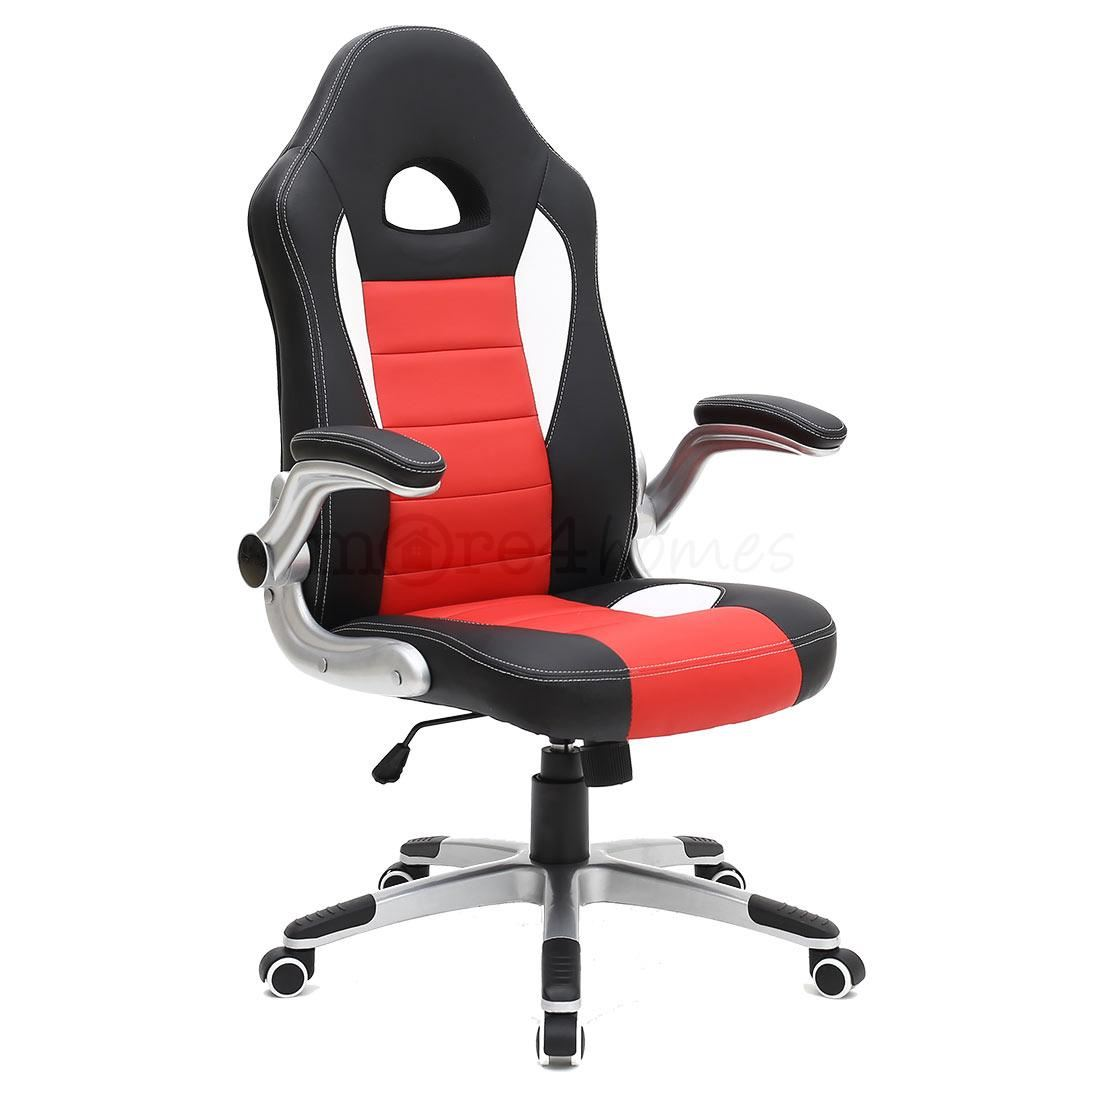 cruz sport racing car office chair leather adjustable. Black Bedroom Furniture Sets. Home Design Ideas